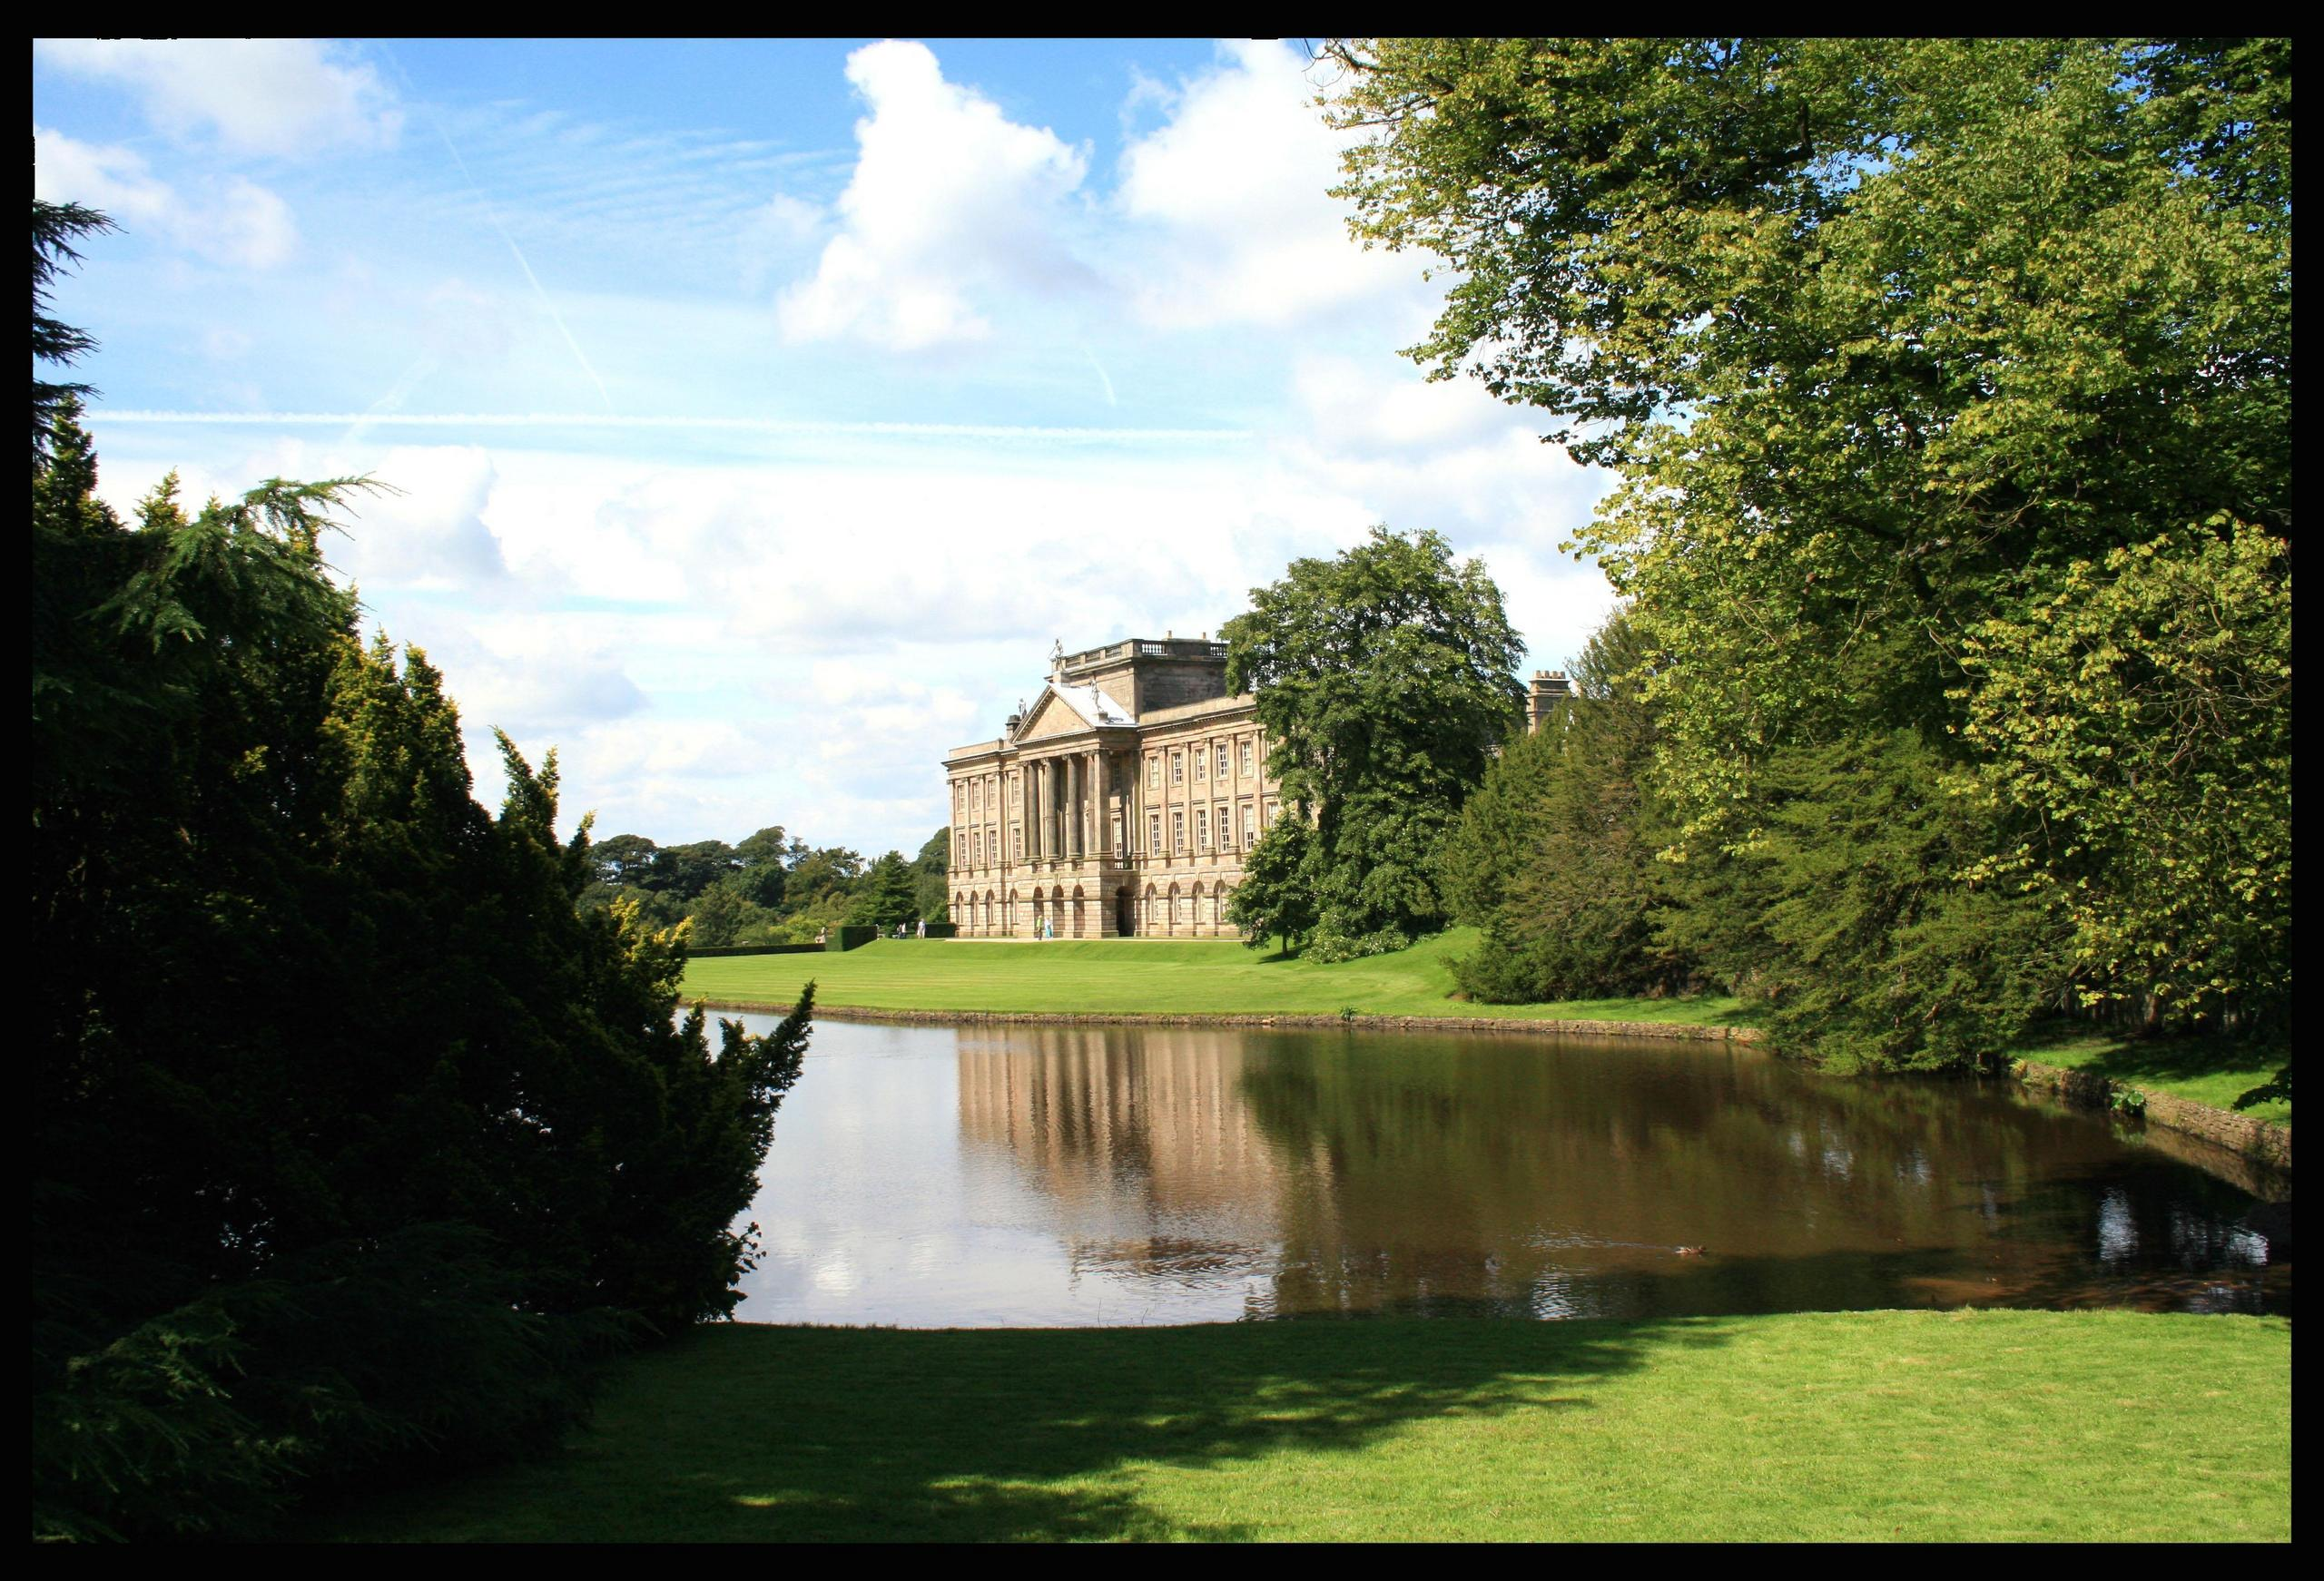 The Darcys of Pemberley,